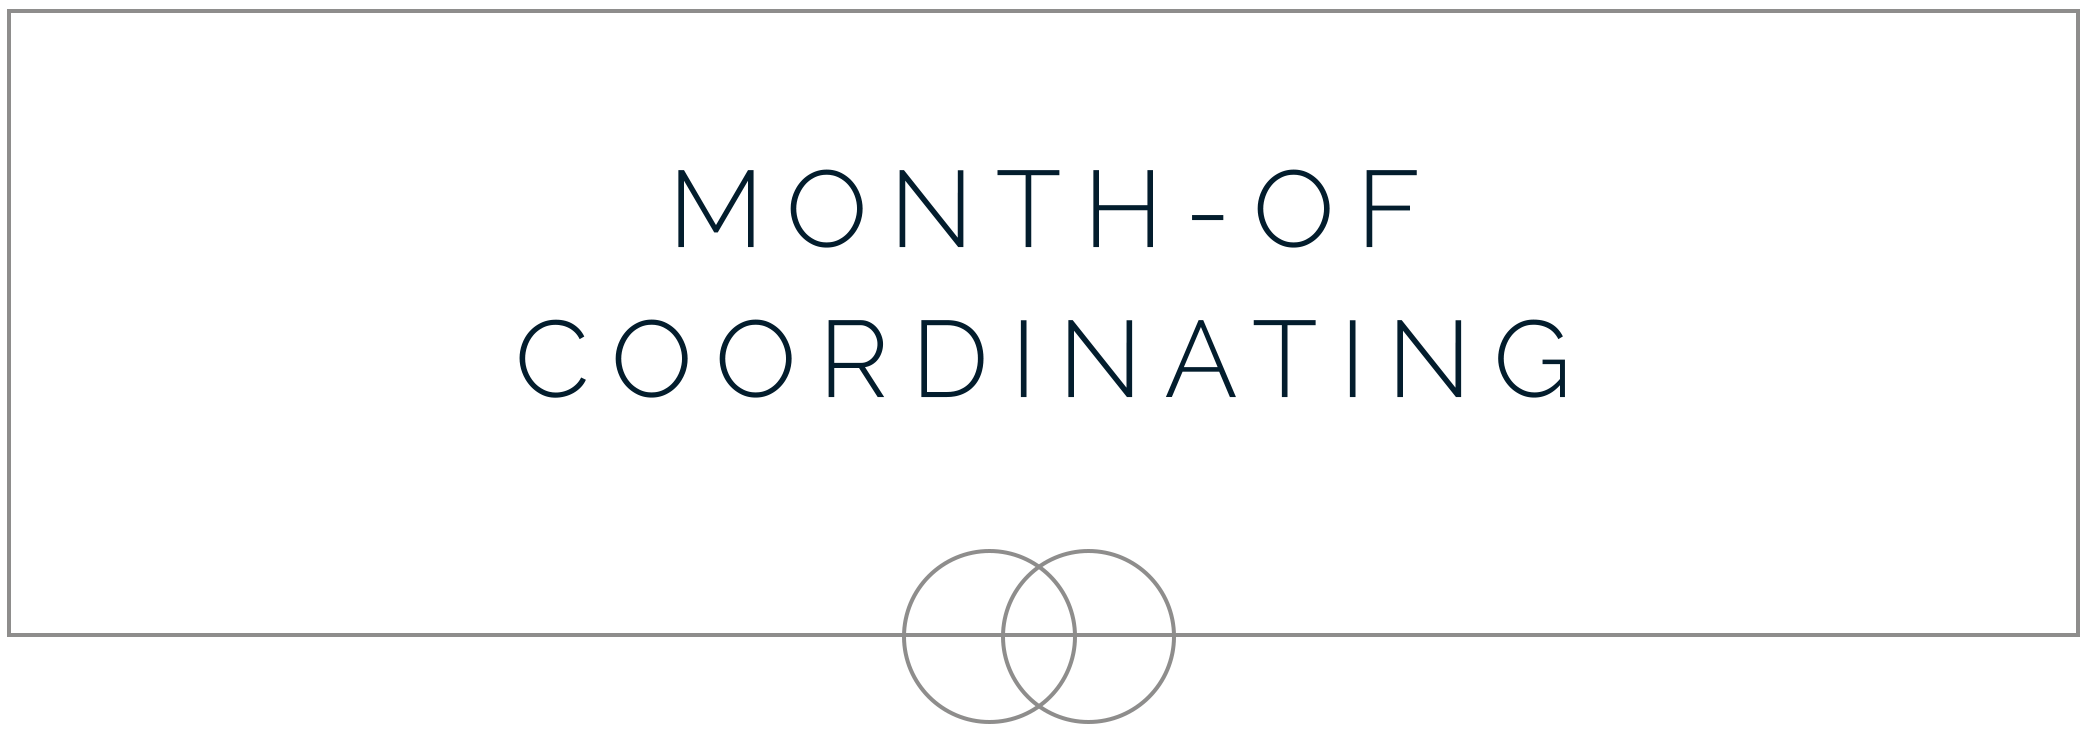 month of coordinating 1.png